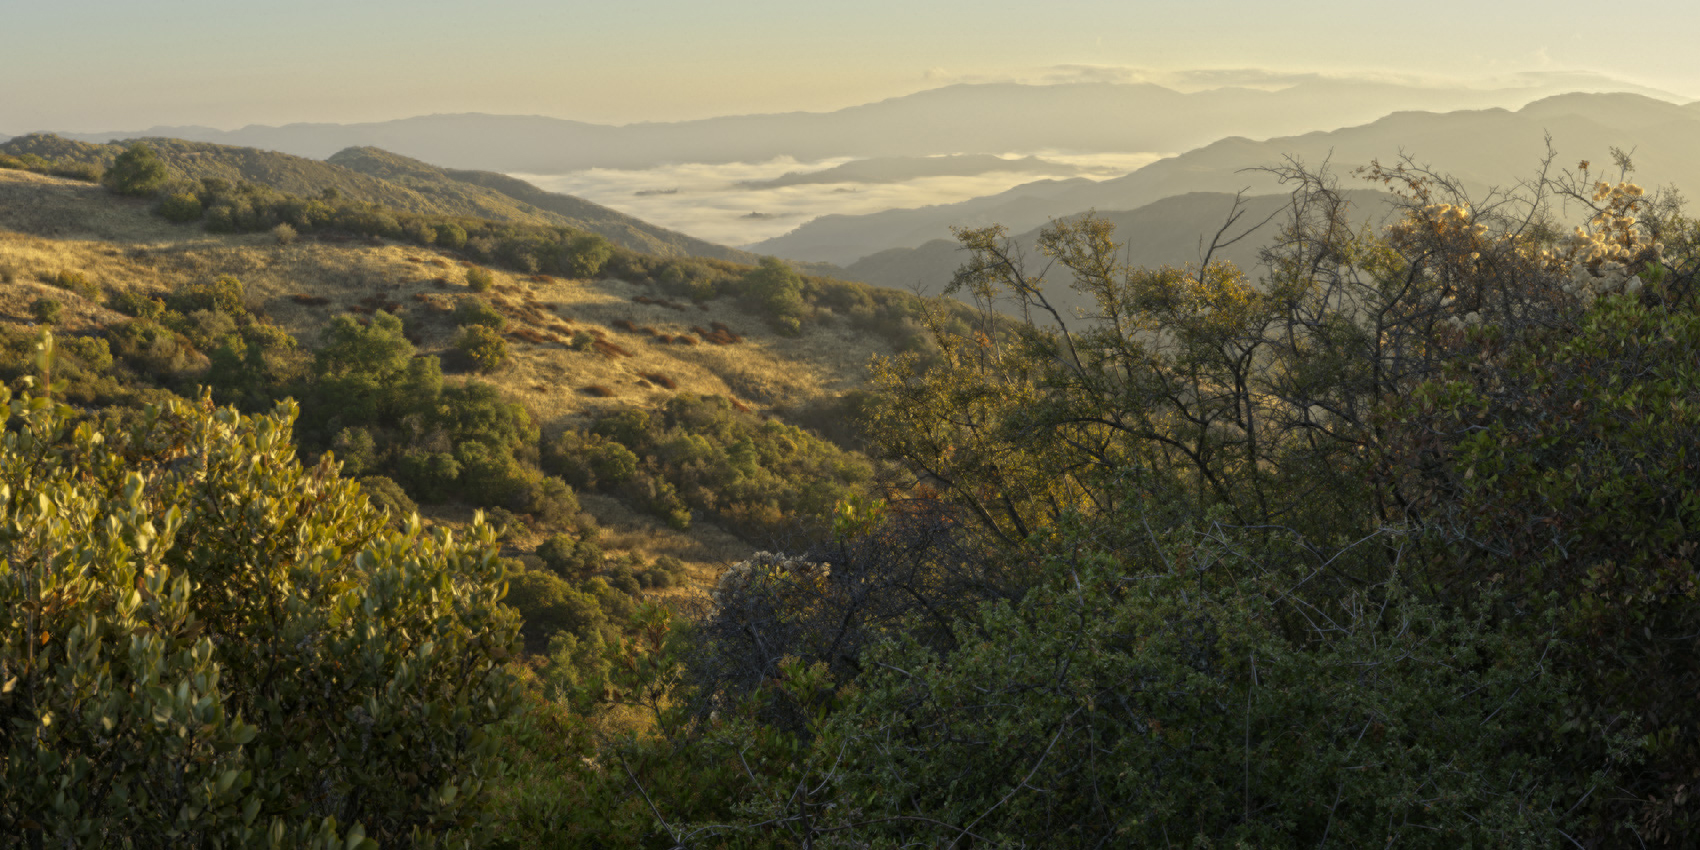 Santa Lucia Wilderness Addition; image courtesy Jeff Jones, Lumnos Photography